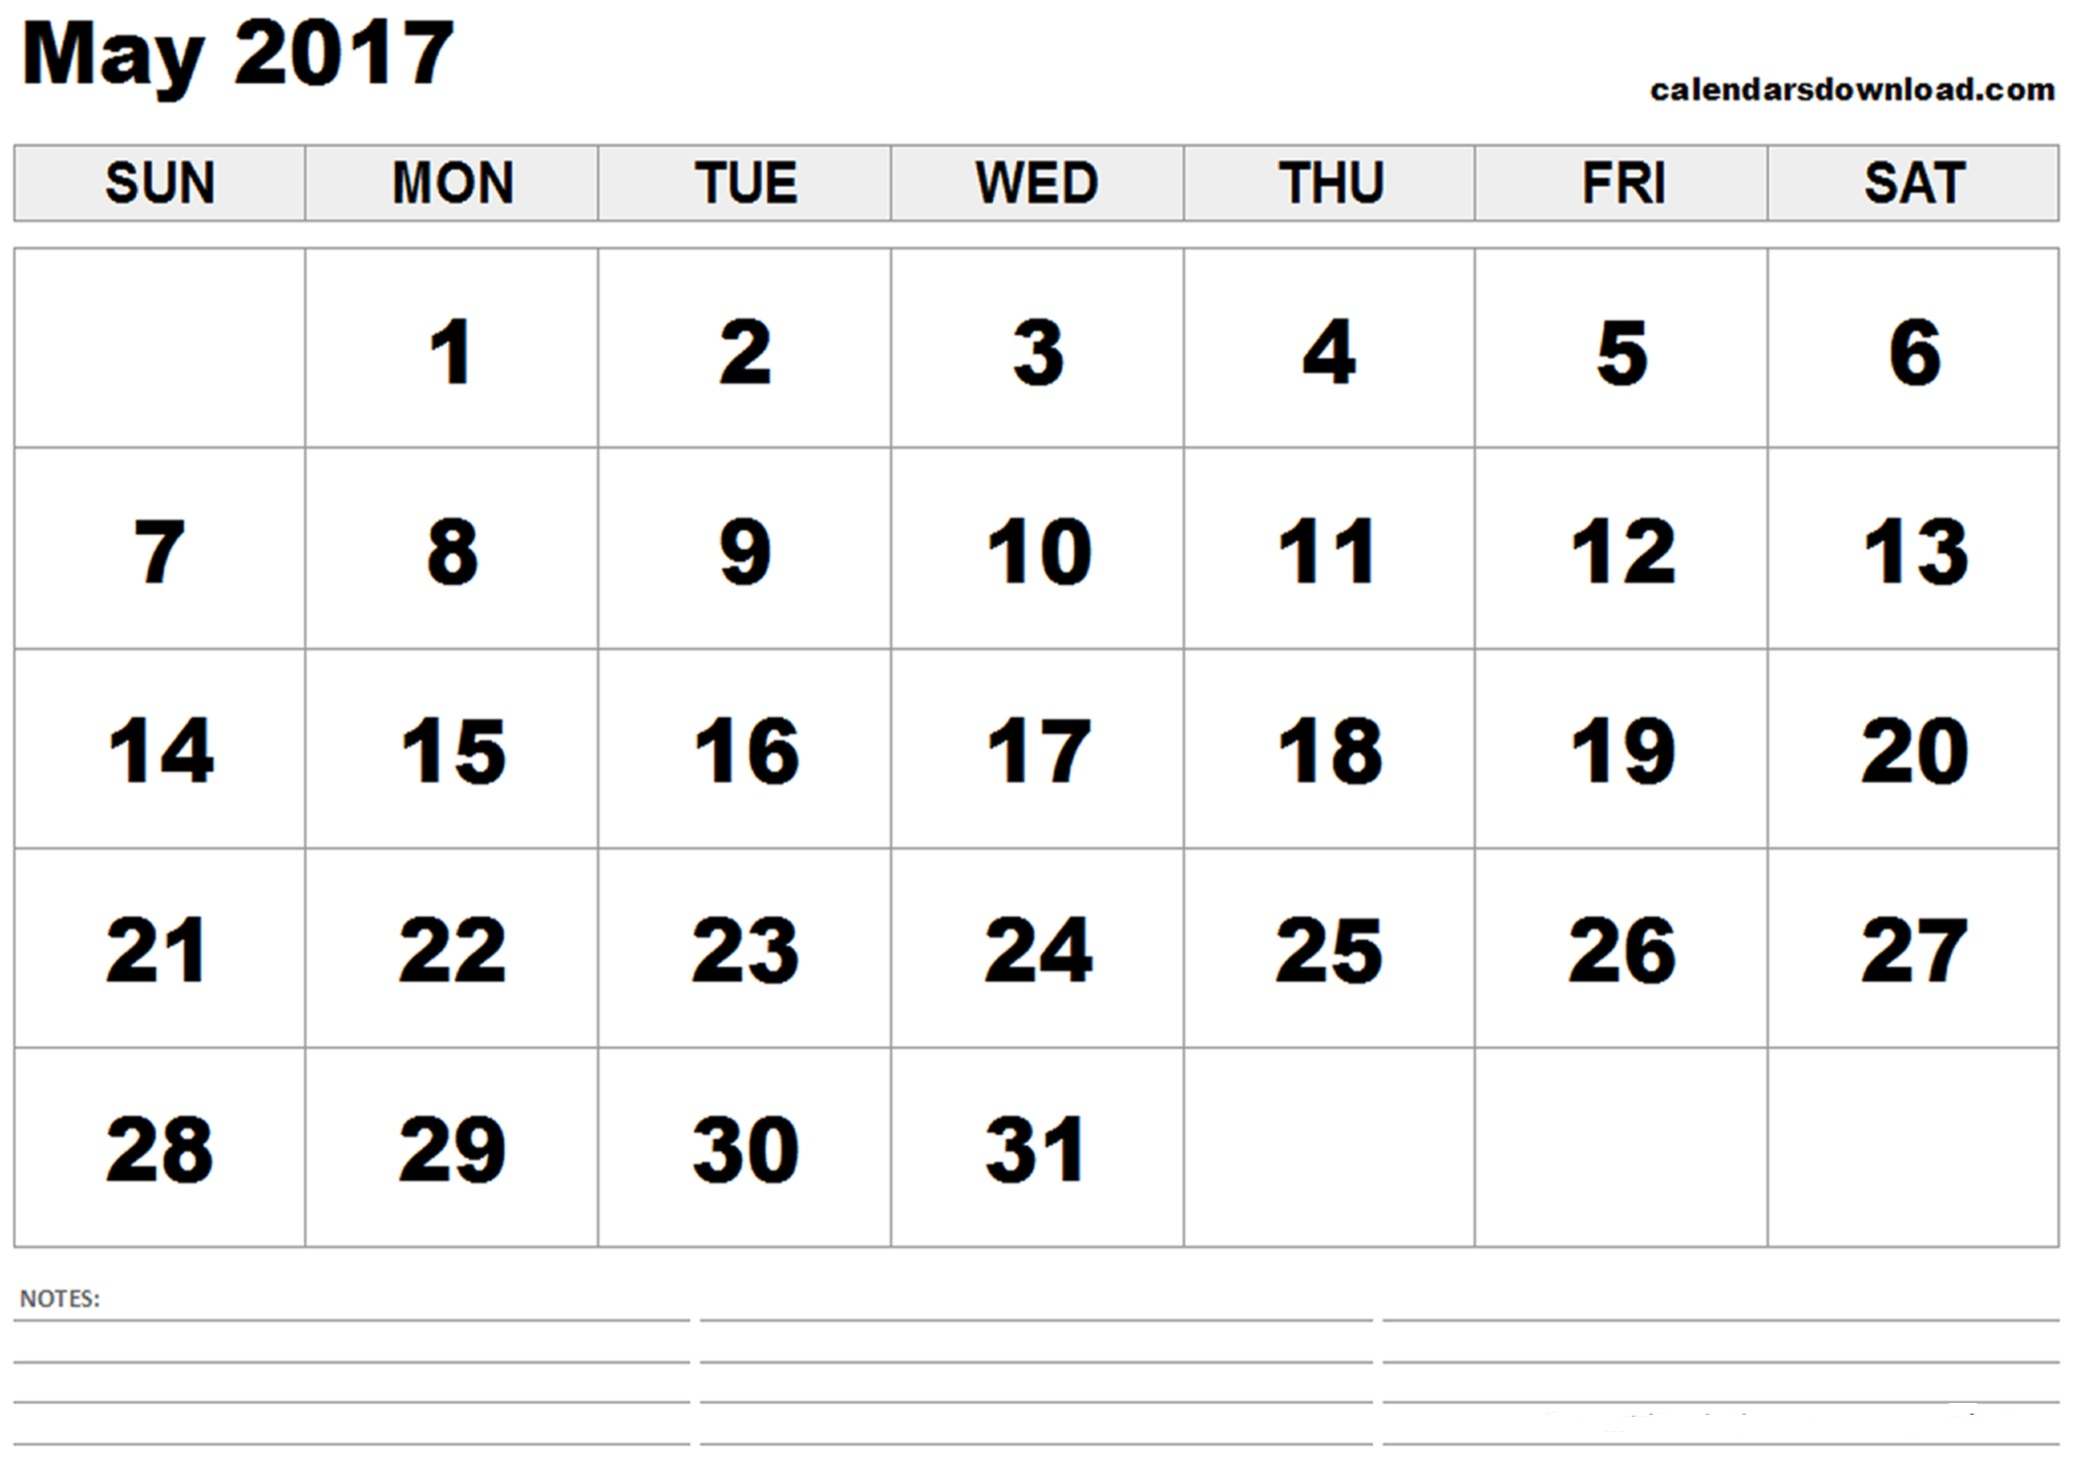 May 2017 Calendar Document